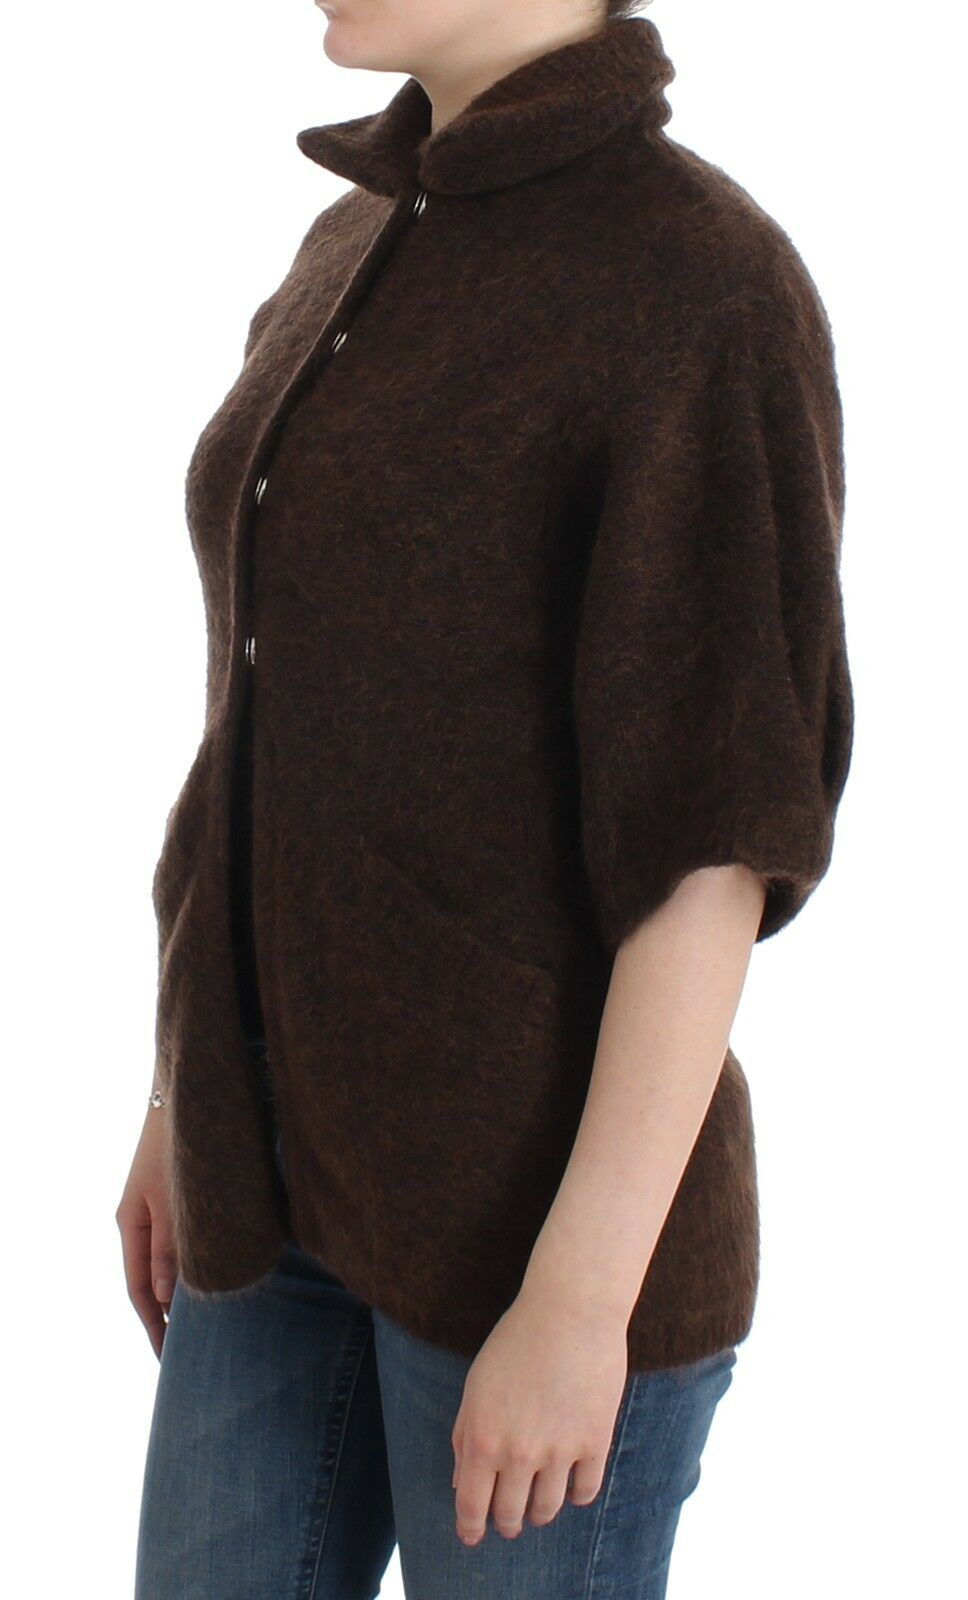 NWT NWT NWT  550 CLASS ROBERTO CAVALLI Brown Mohair Cardigan Knit Sweater Wool IT40 US6 ddfab6